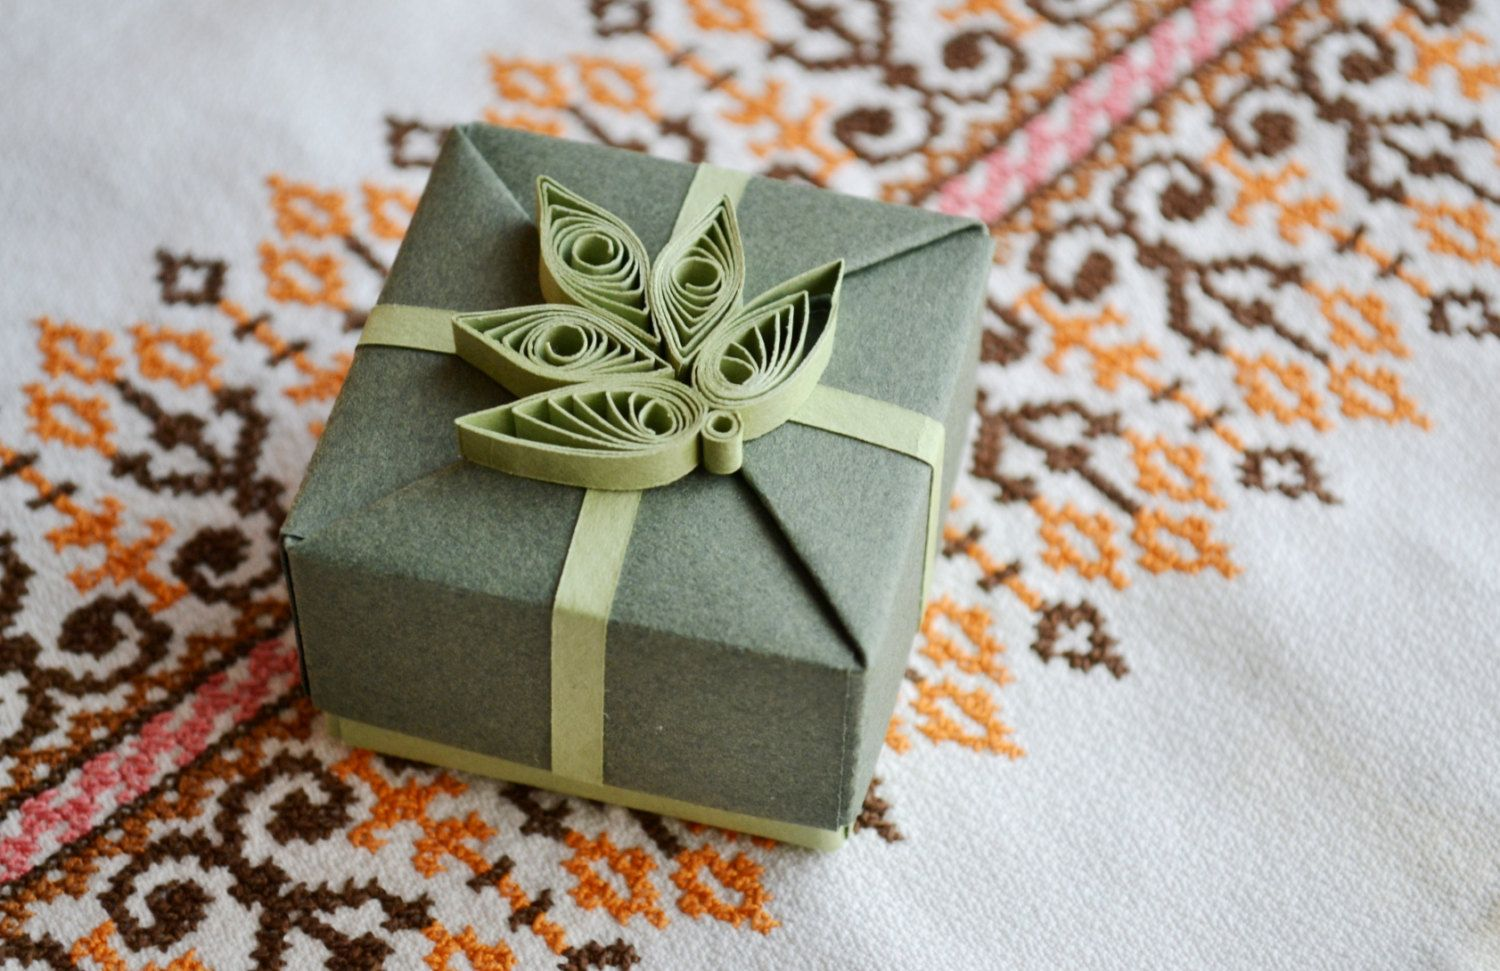 Jewelry Gift Box With Gift Tag, Origami Box With Quilling